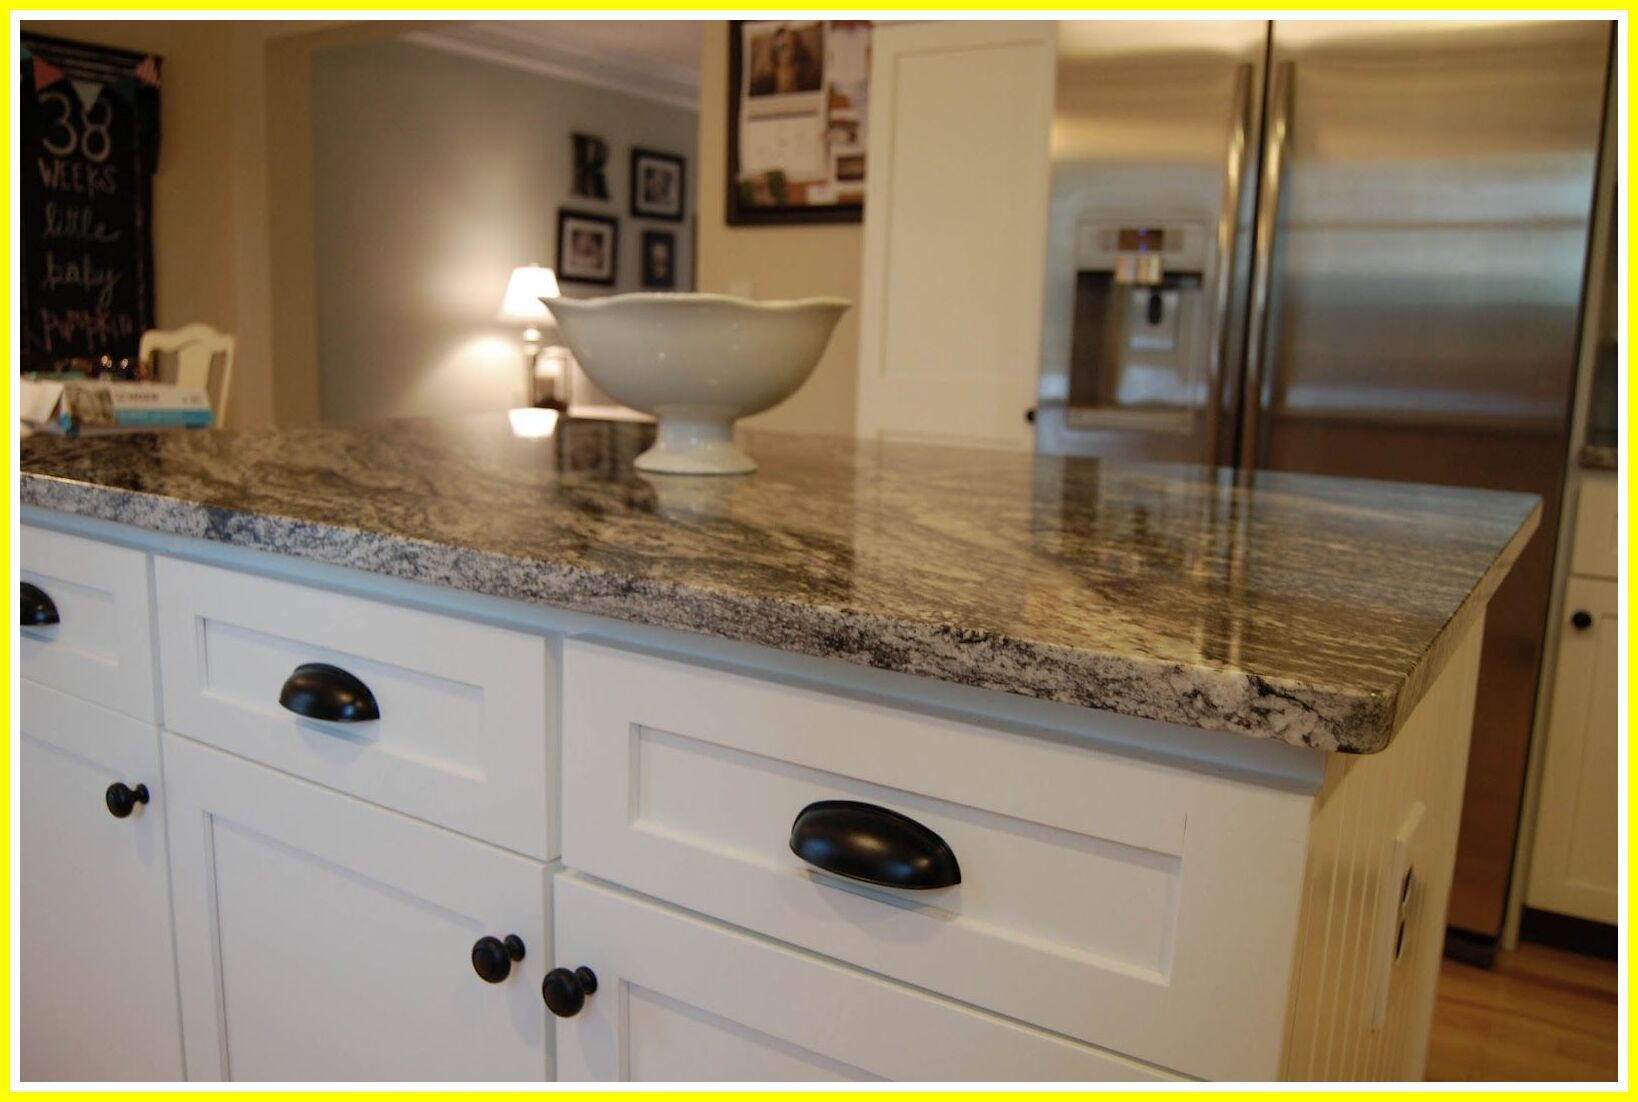 Pin By Nicole Stack On My Work Commercial Tile Shop Antique White Kitchen Backsplash For White Cabinets Beige Kitchen